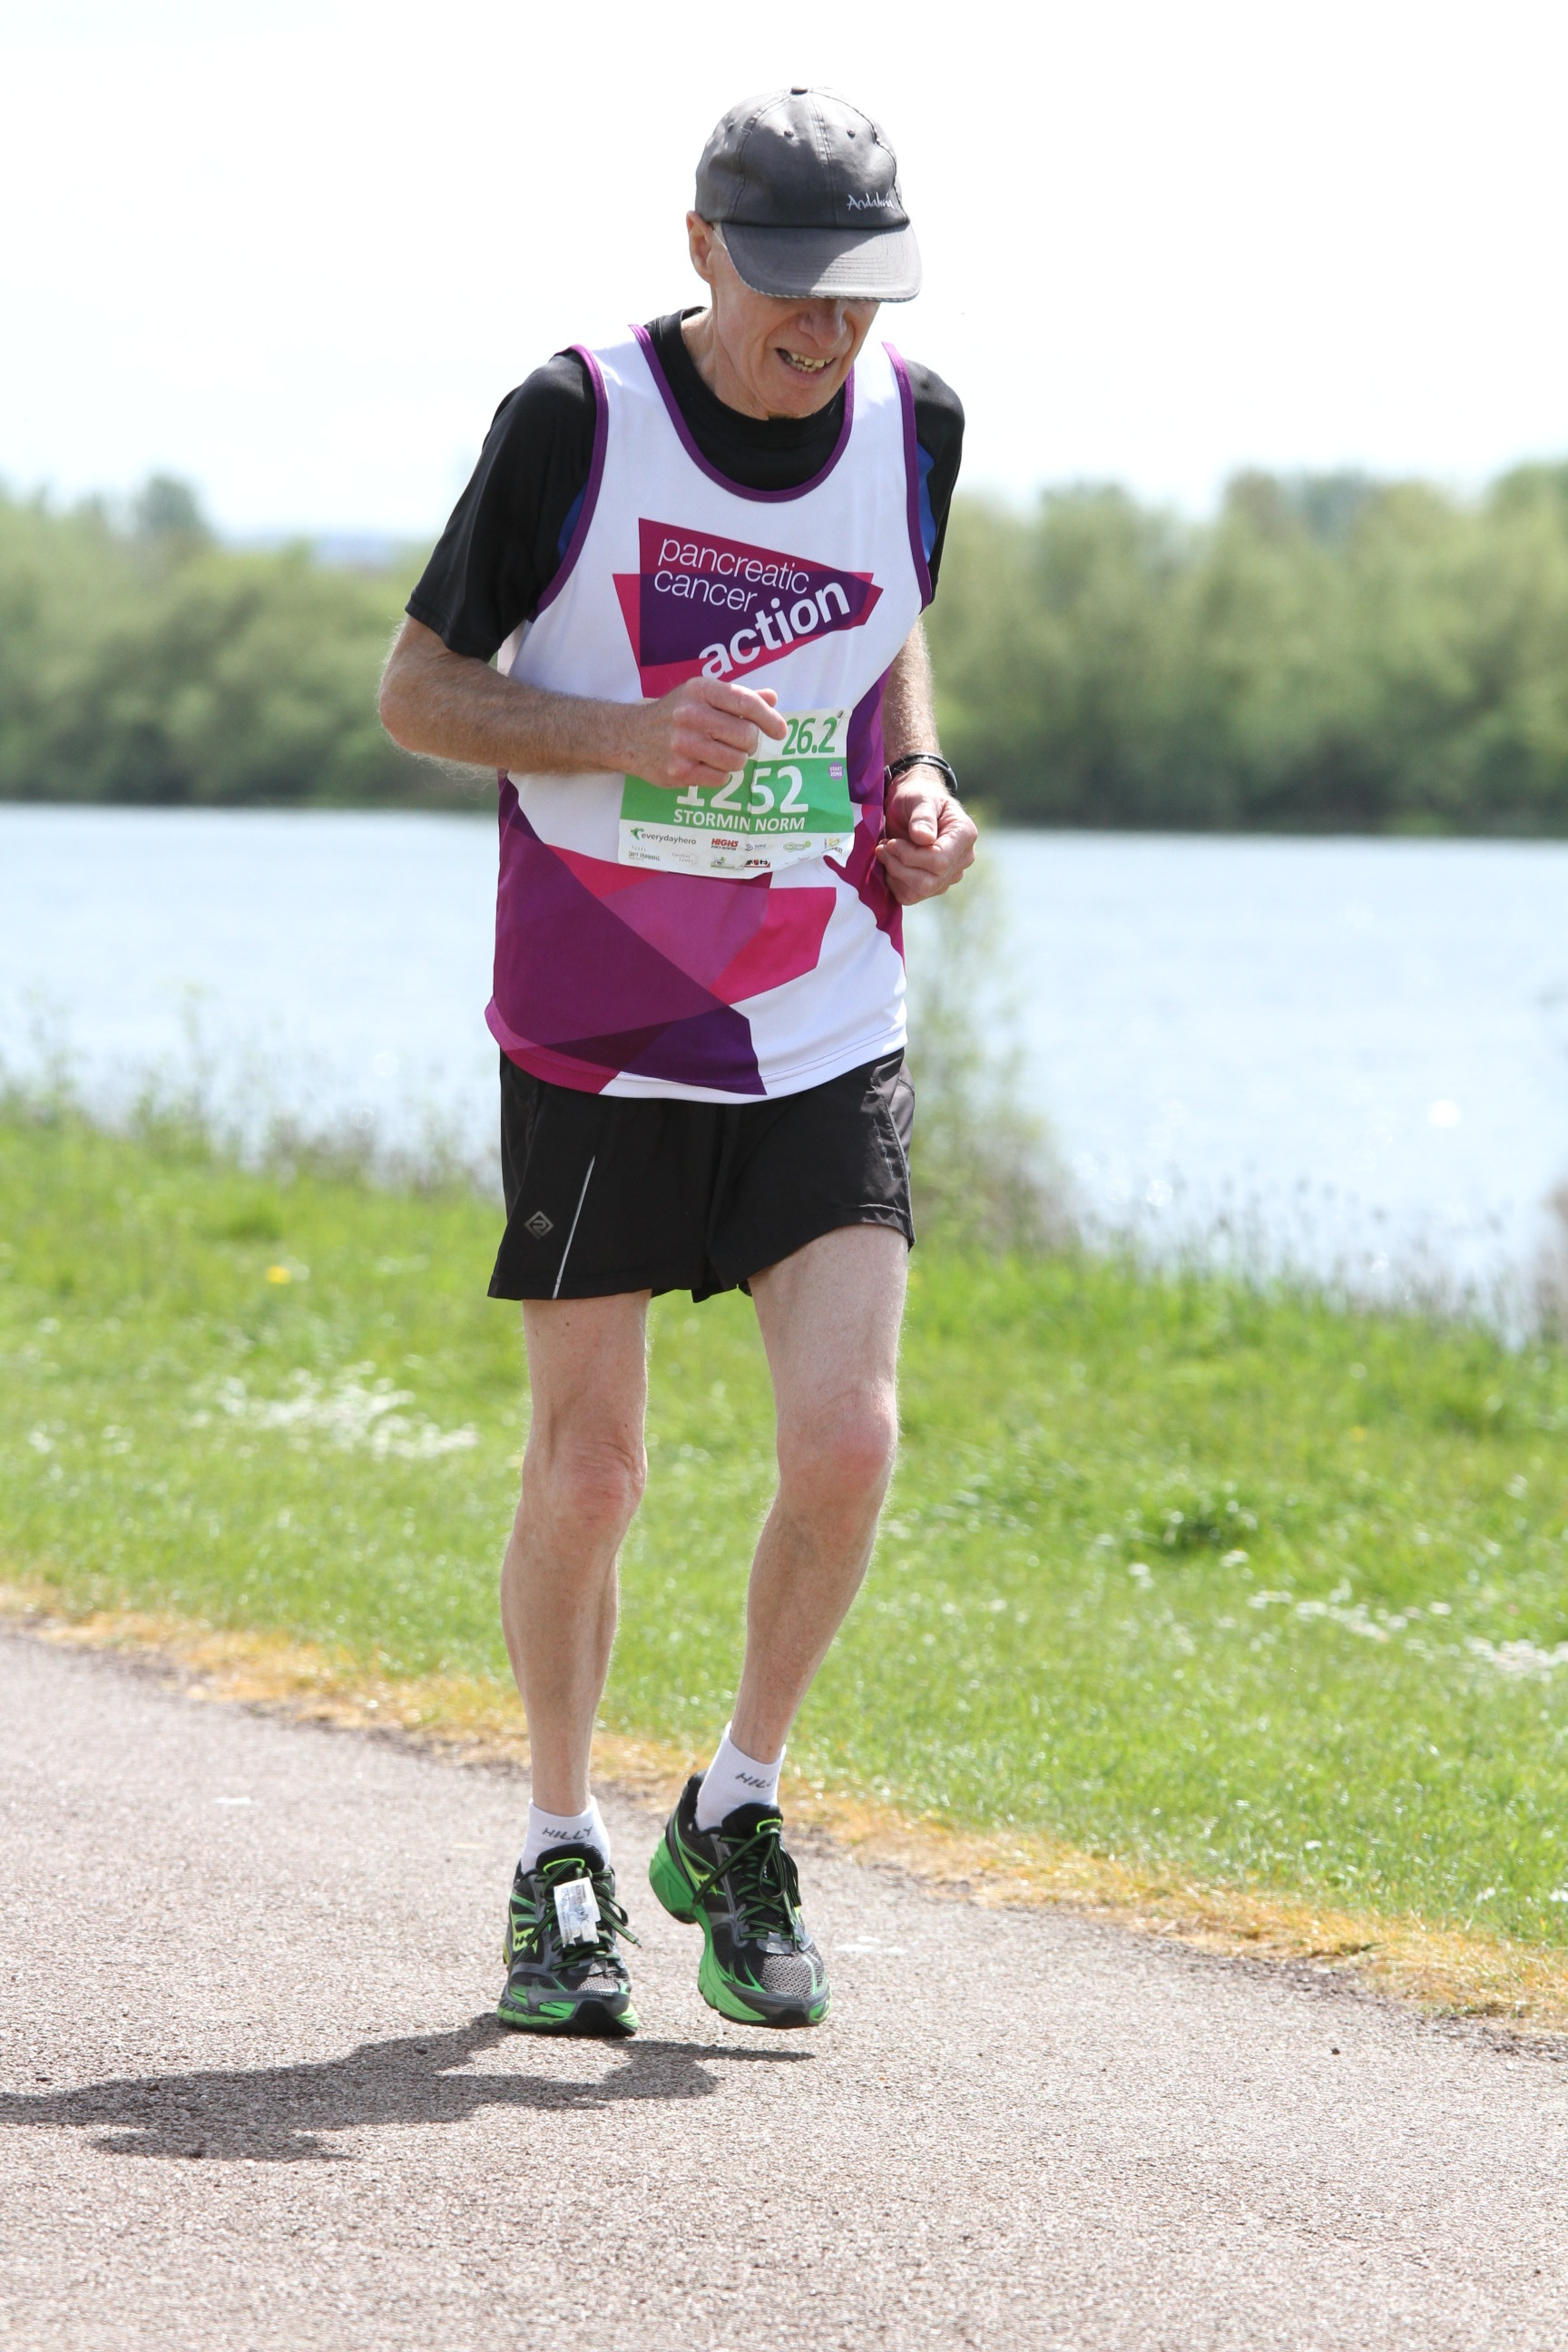 A picture of Norman Whitwood as part of the dedicated family who raise money for Pancreatic Cancer Action